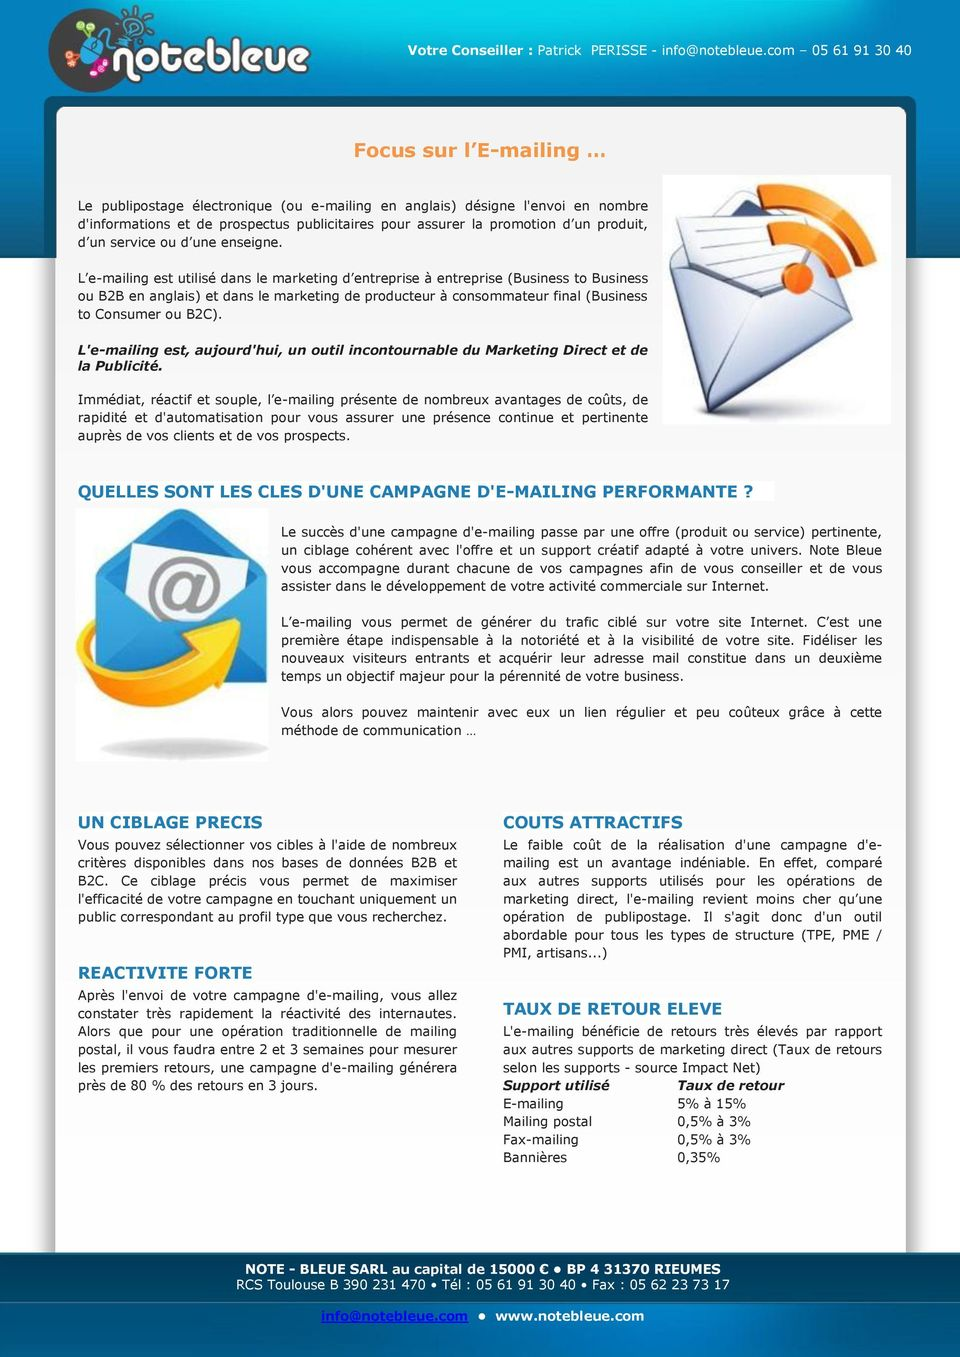 L e-mailing est utilisé dans le marketing d entreprise à entreprise (Business to Business ou B2B en anglais) et dans le marketing de producteur à consommateur final (Business to Consumer ou B2C).